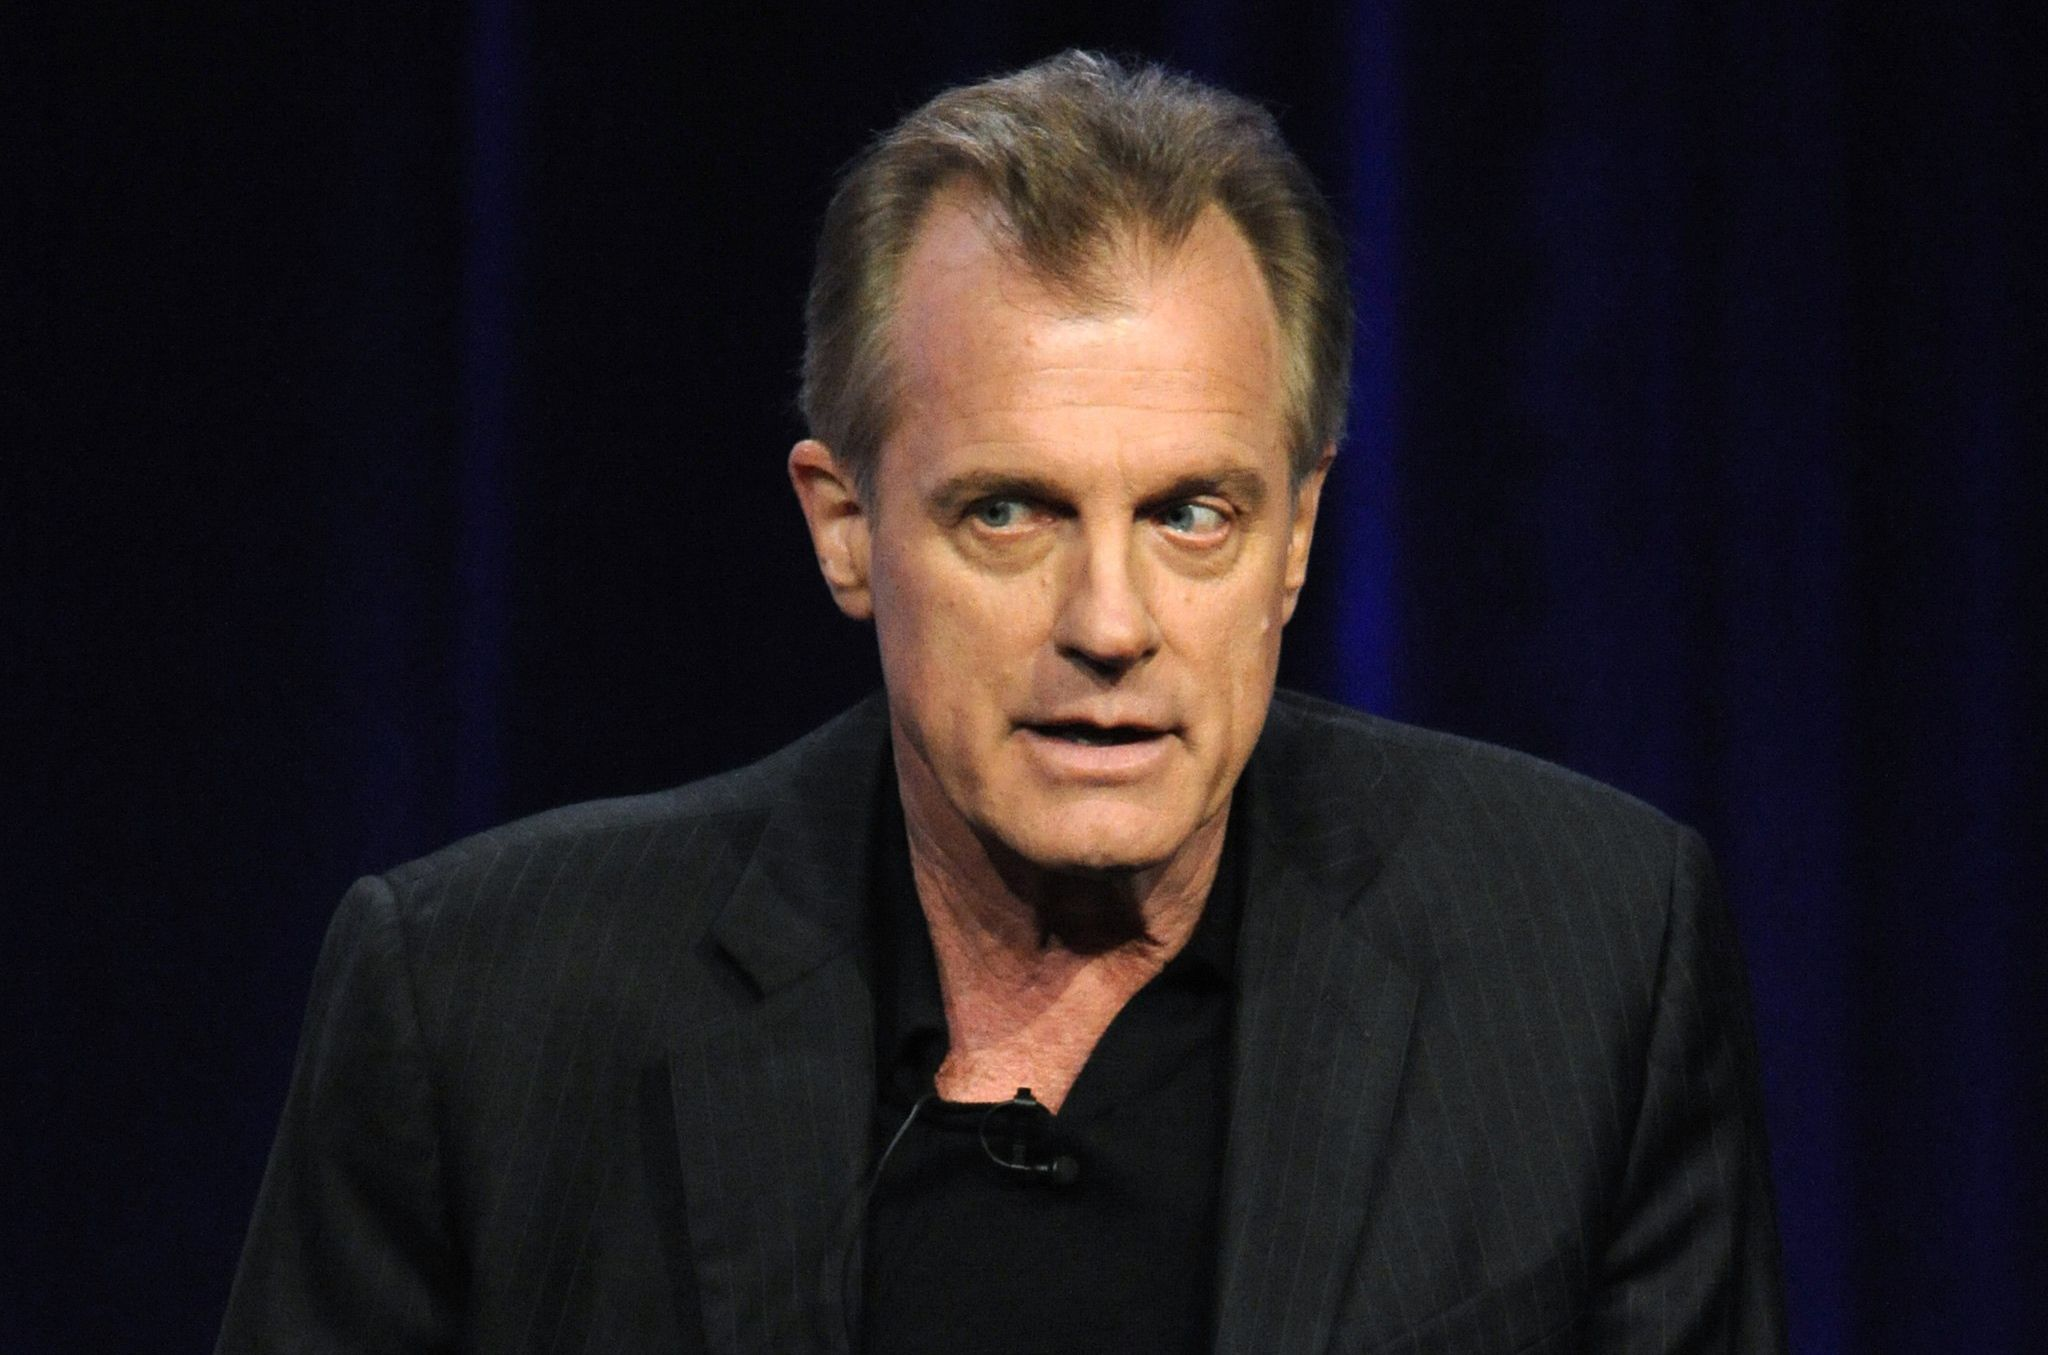 Stephen Collins news: parla April Price, la presunta vittima di pedofilia